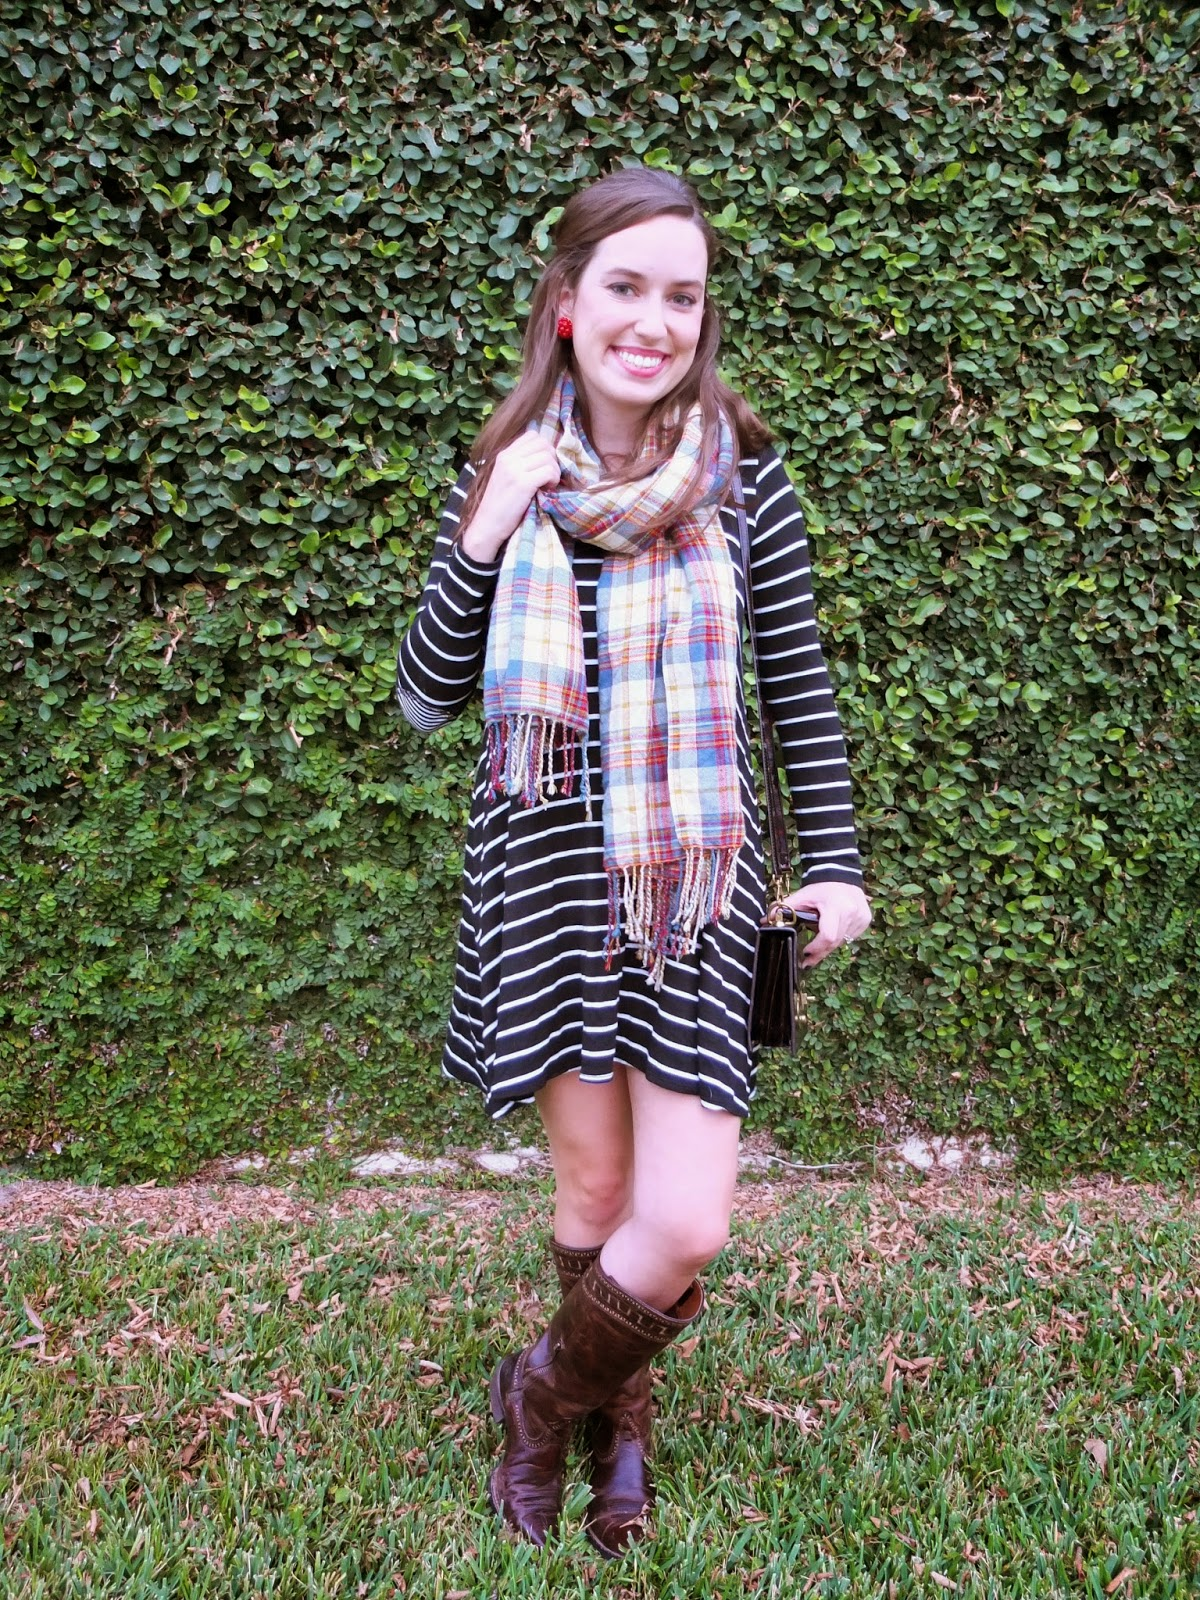 Ariat Sahara Boots, Anthropologie Striped Dress, Striped Dress and Plaid Scarf, Anthropologie black and white striped dress blog, Lisi Lerch Button Earrings, Ariat Sahara, Sahara Boots